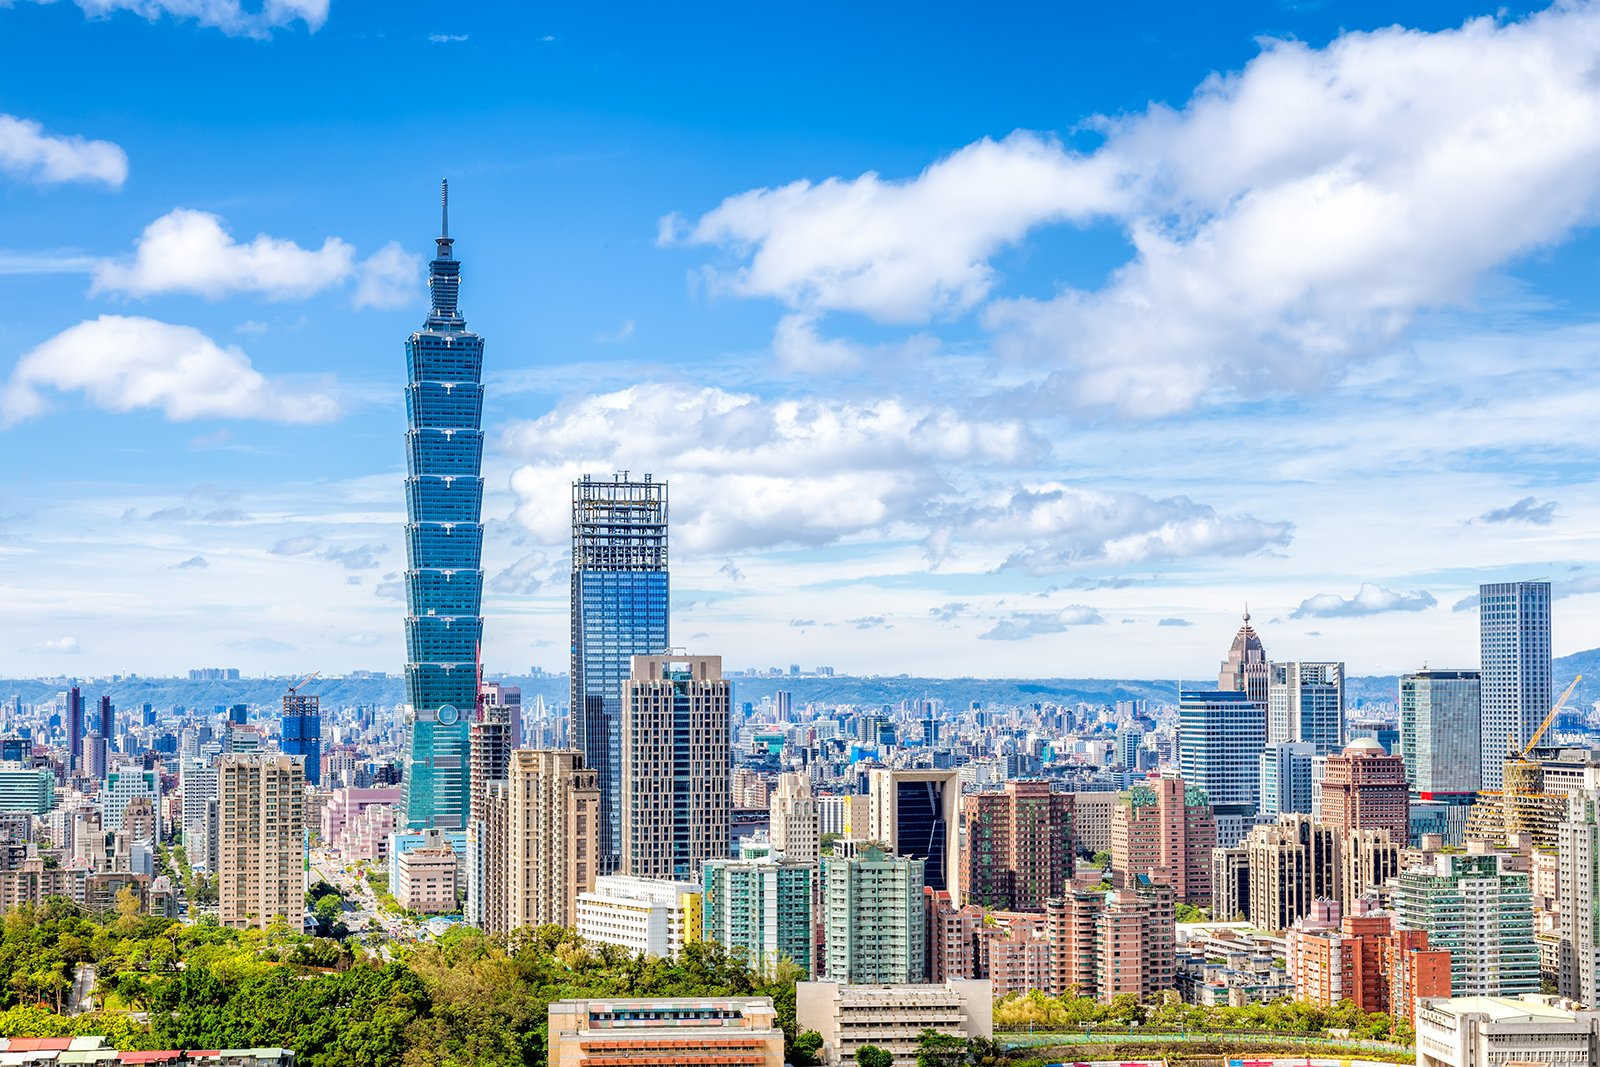 Weather in Taipei - When is the Best Time to Visit Taipei?